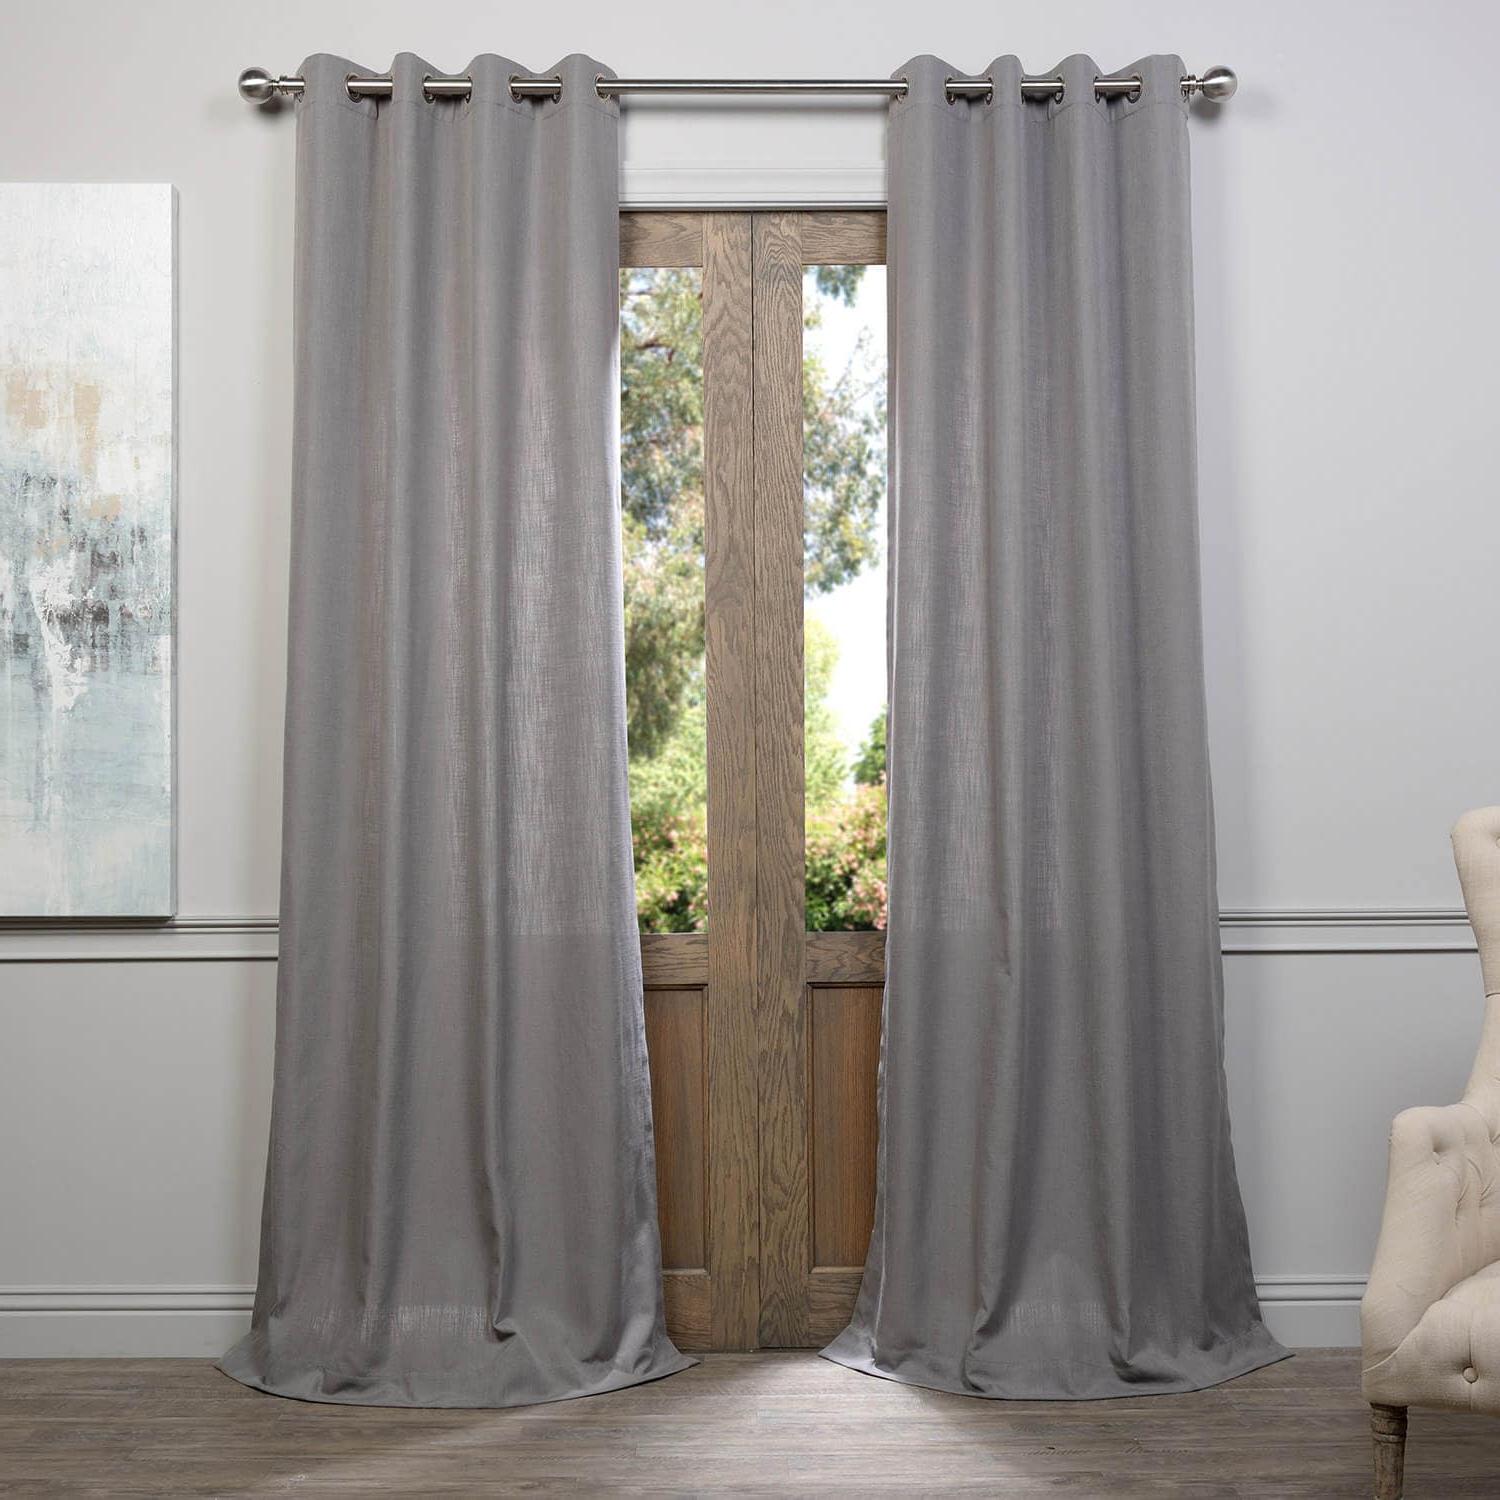 Heavy Faux Linen Single Curtain Panels Inside Latest Pewter Grey Grommet Heavy Faux Linen Curtain (View 17 of 20)